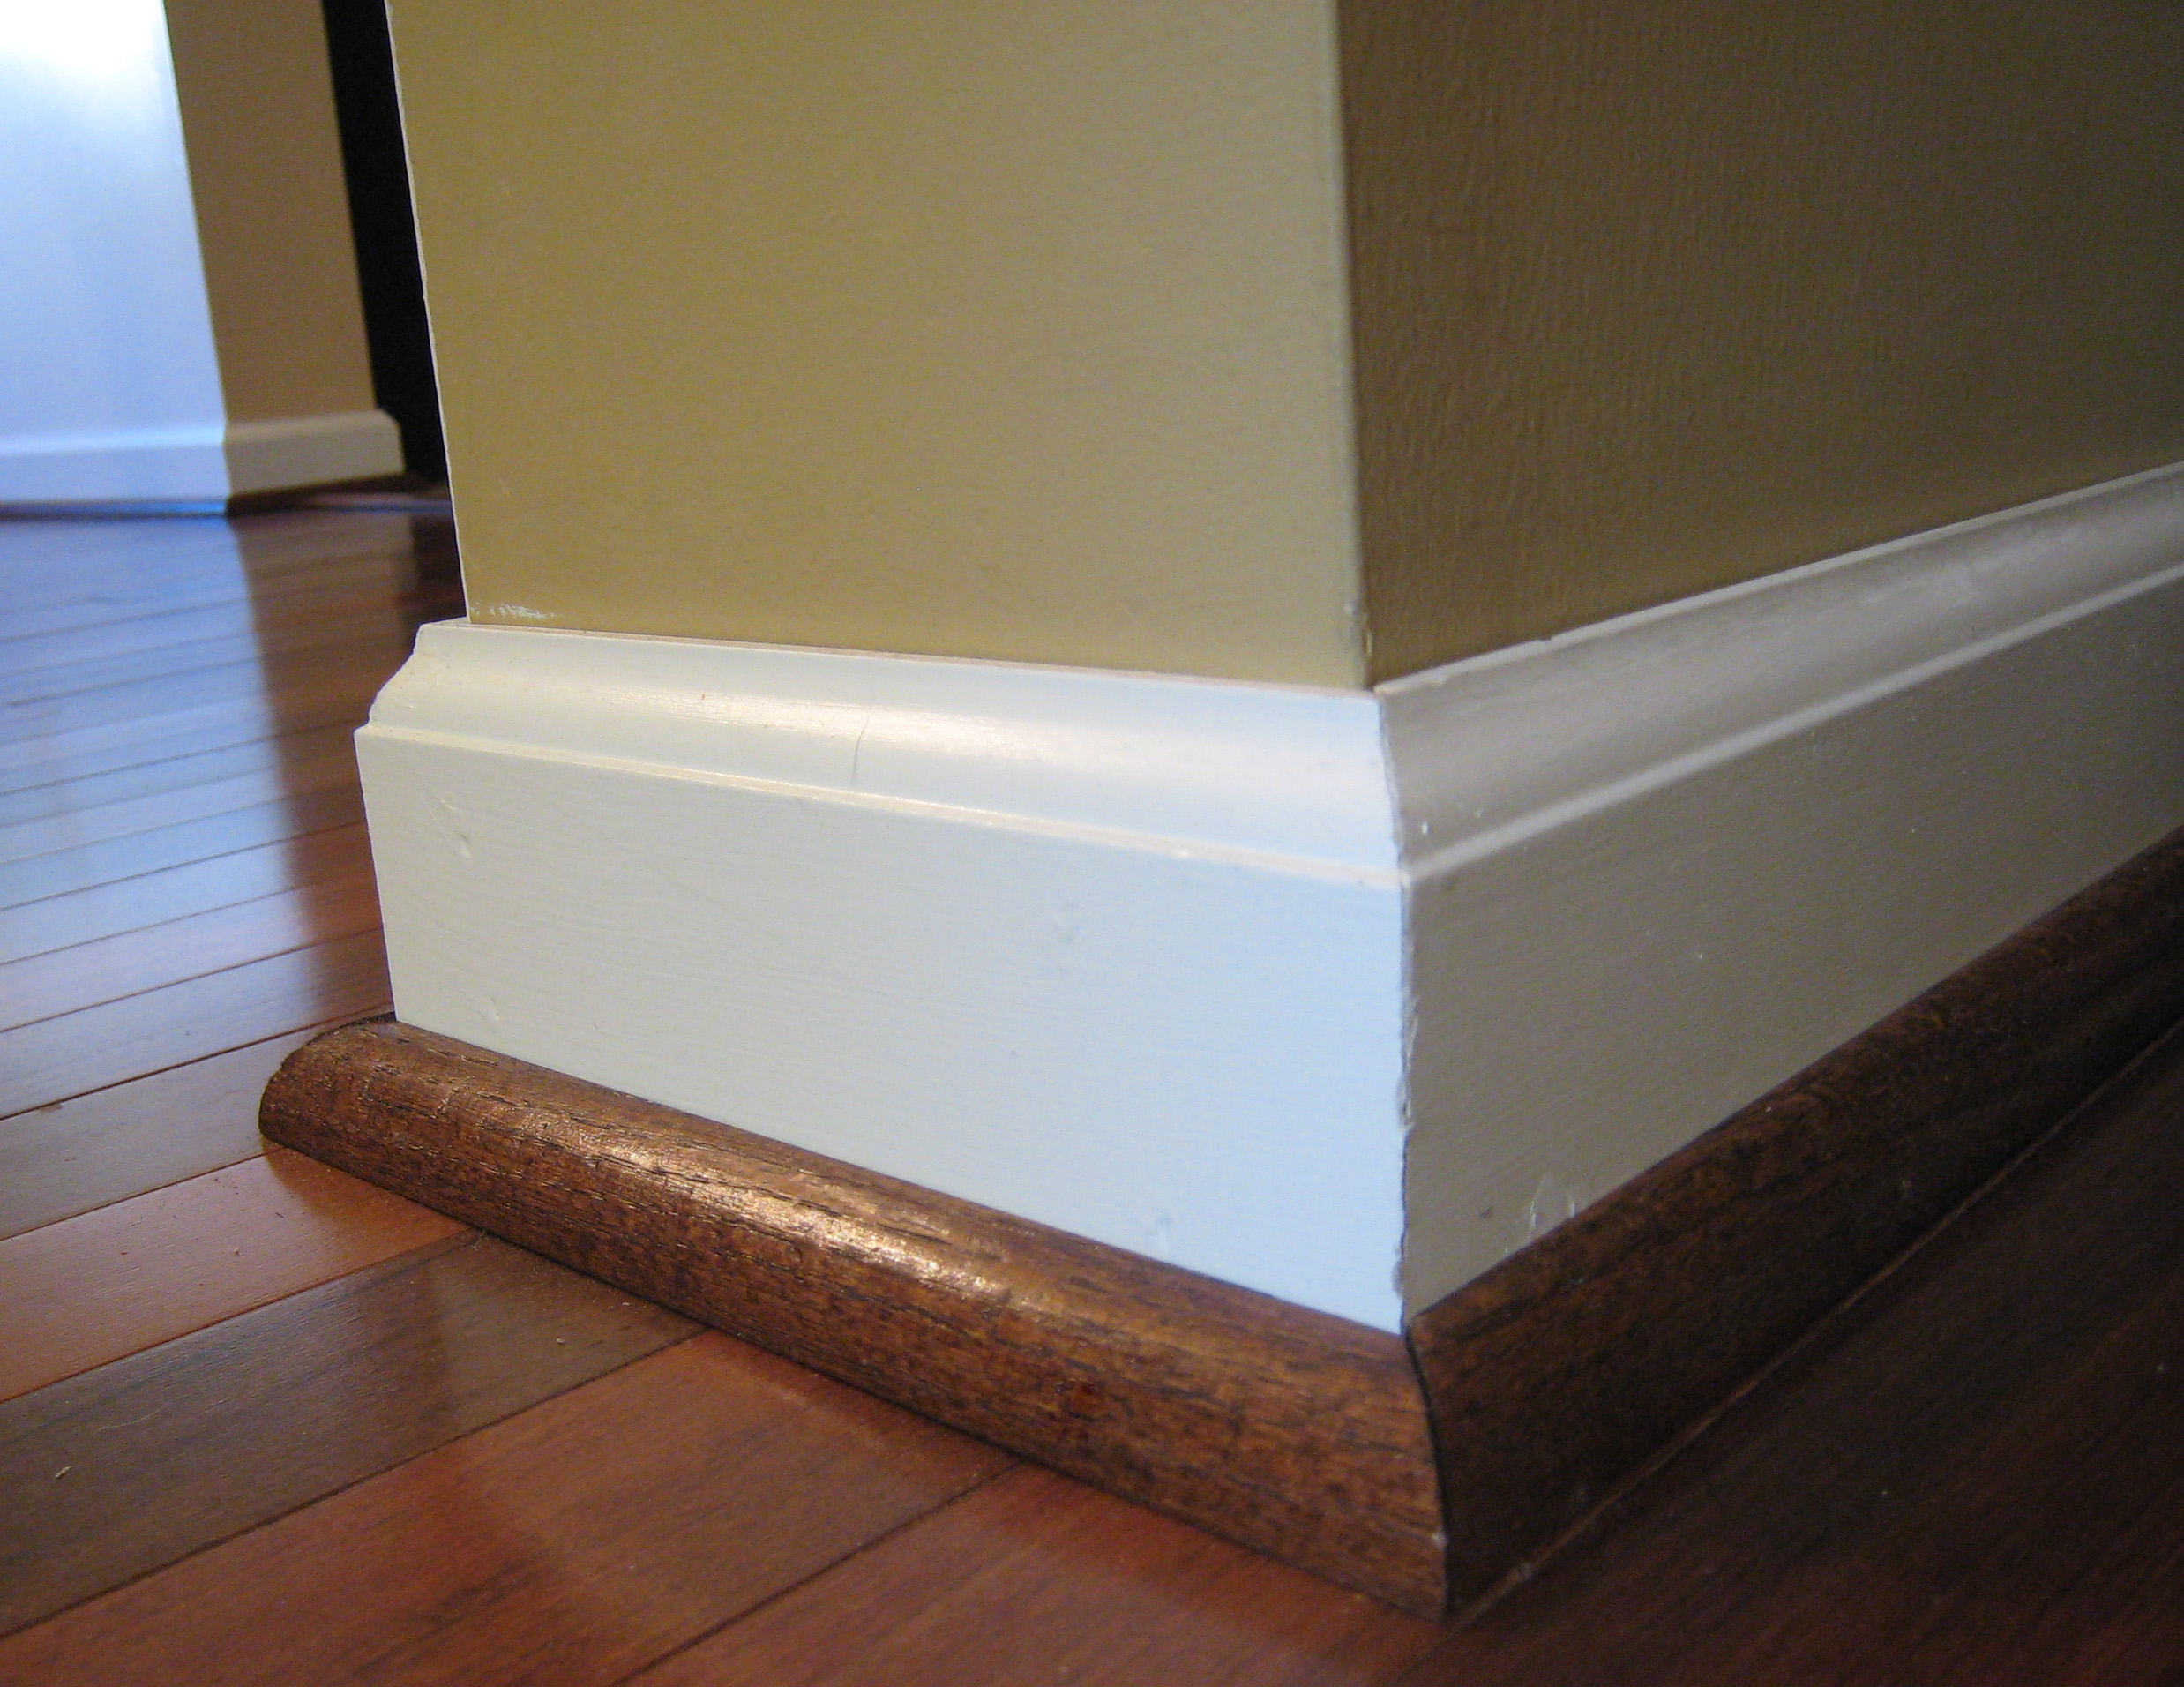 for wood ideas and remodel baseboard molding trim style concept floor trends u incredible best pict files uncategorized